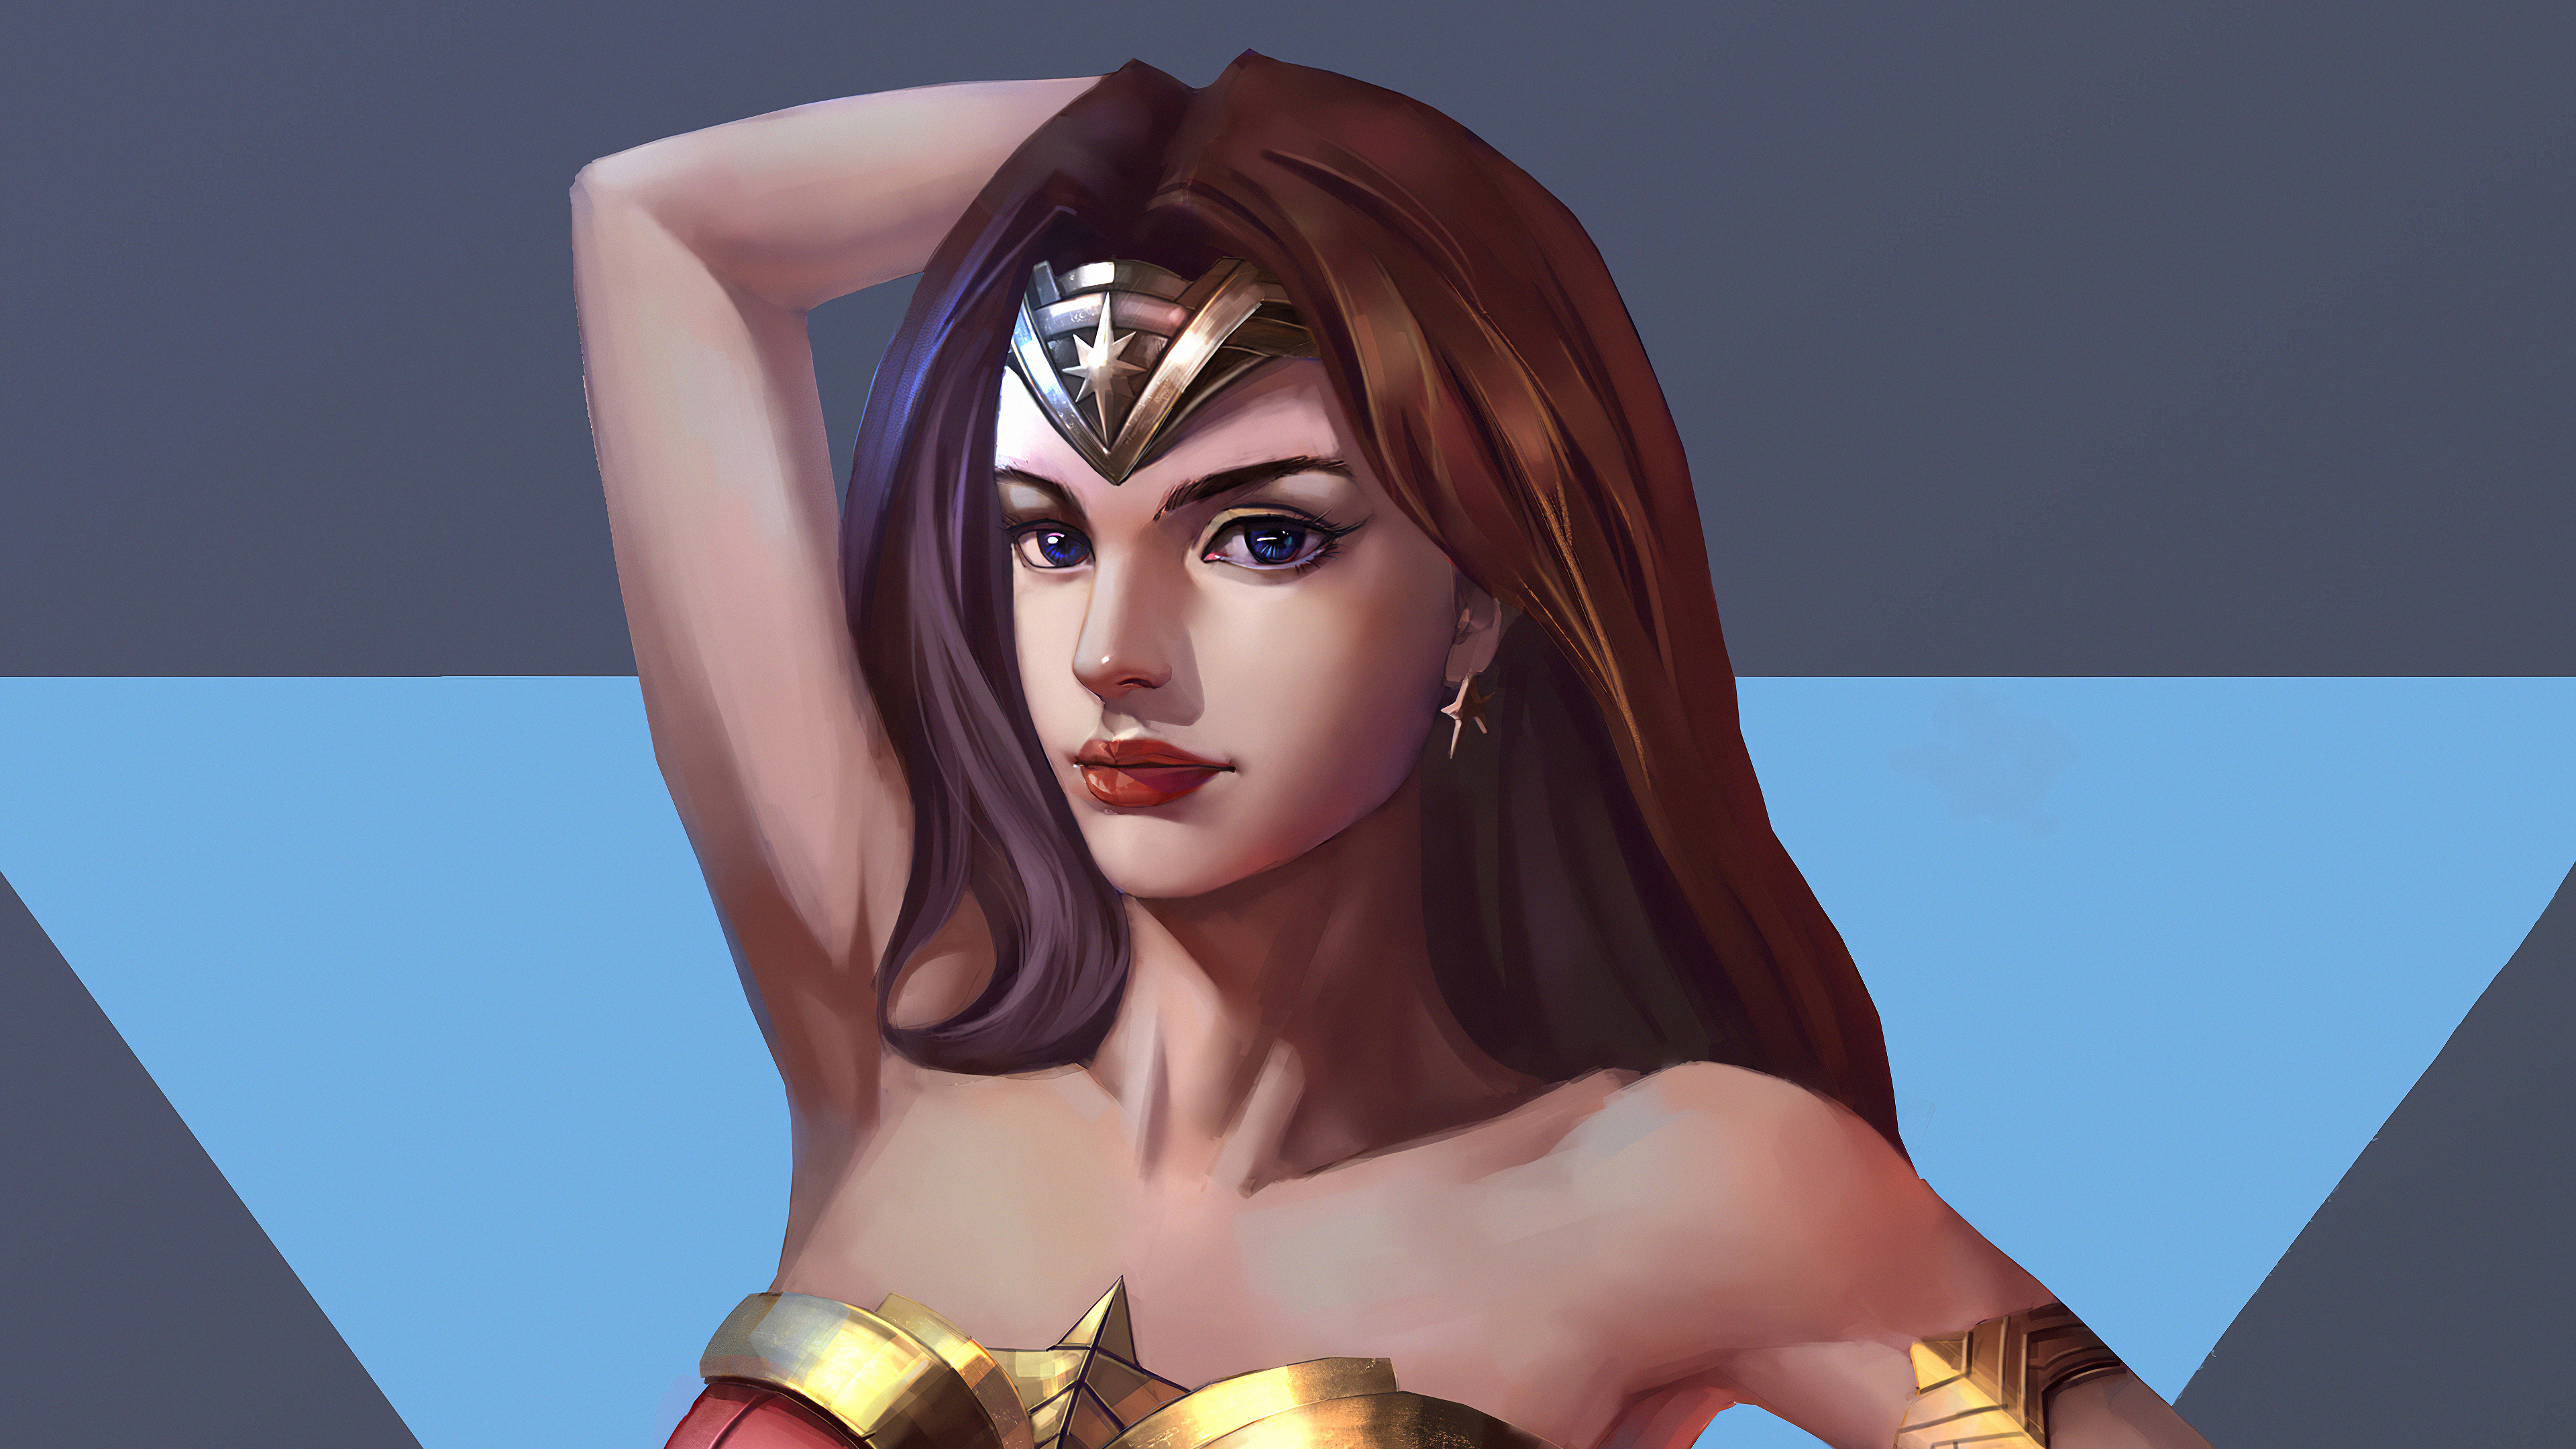 wonder woman art 1576091232 - Wonder Woman art -